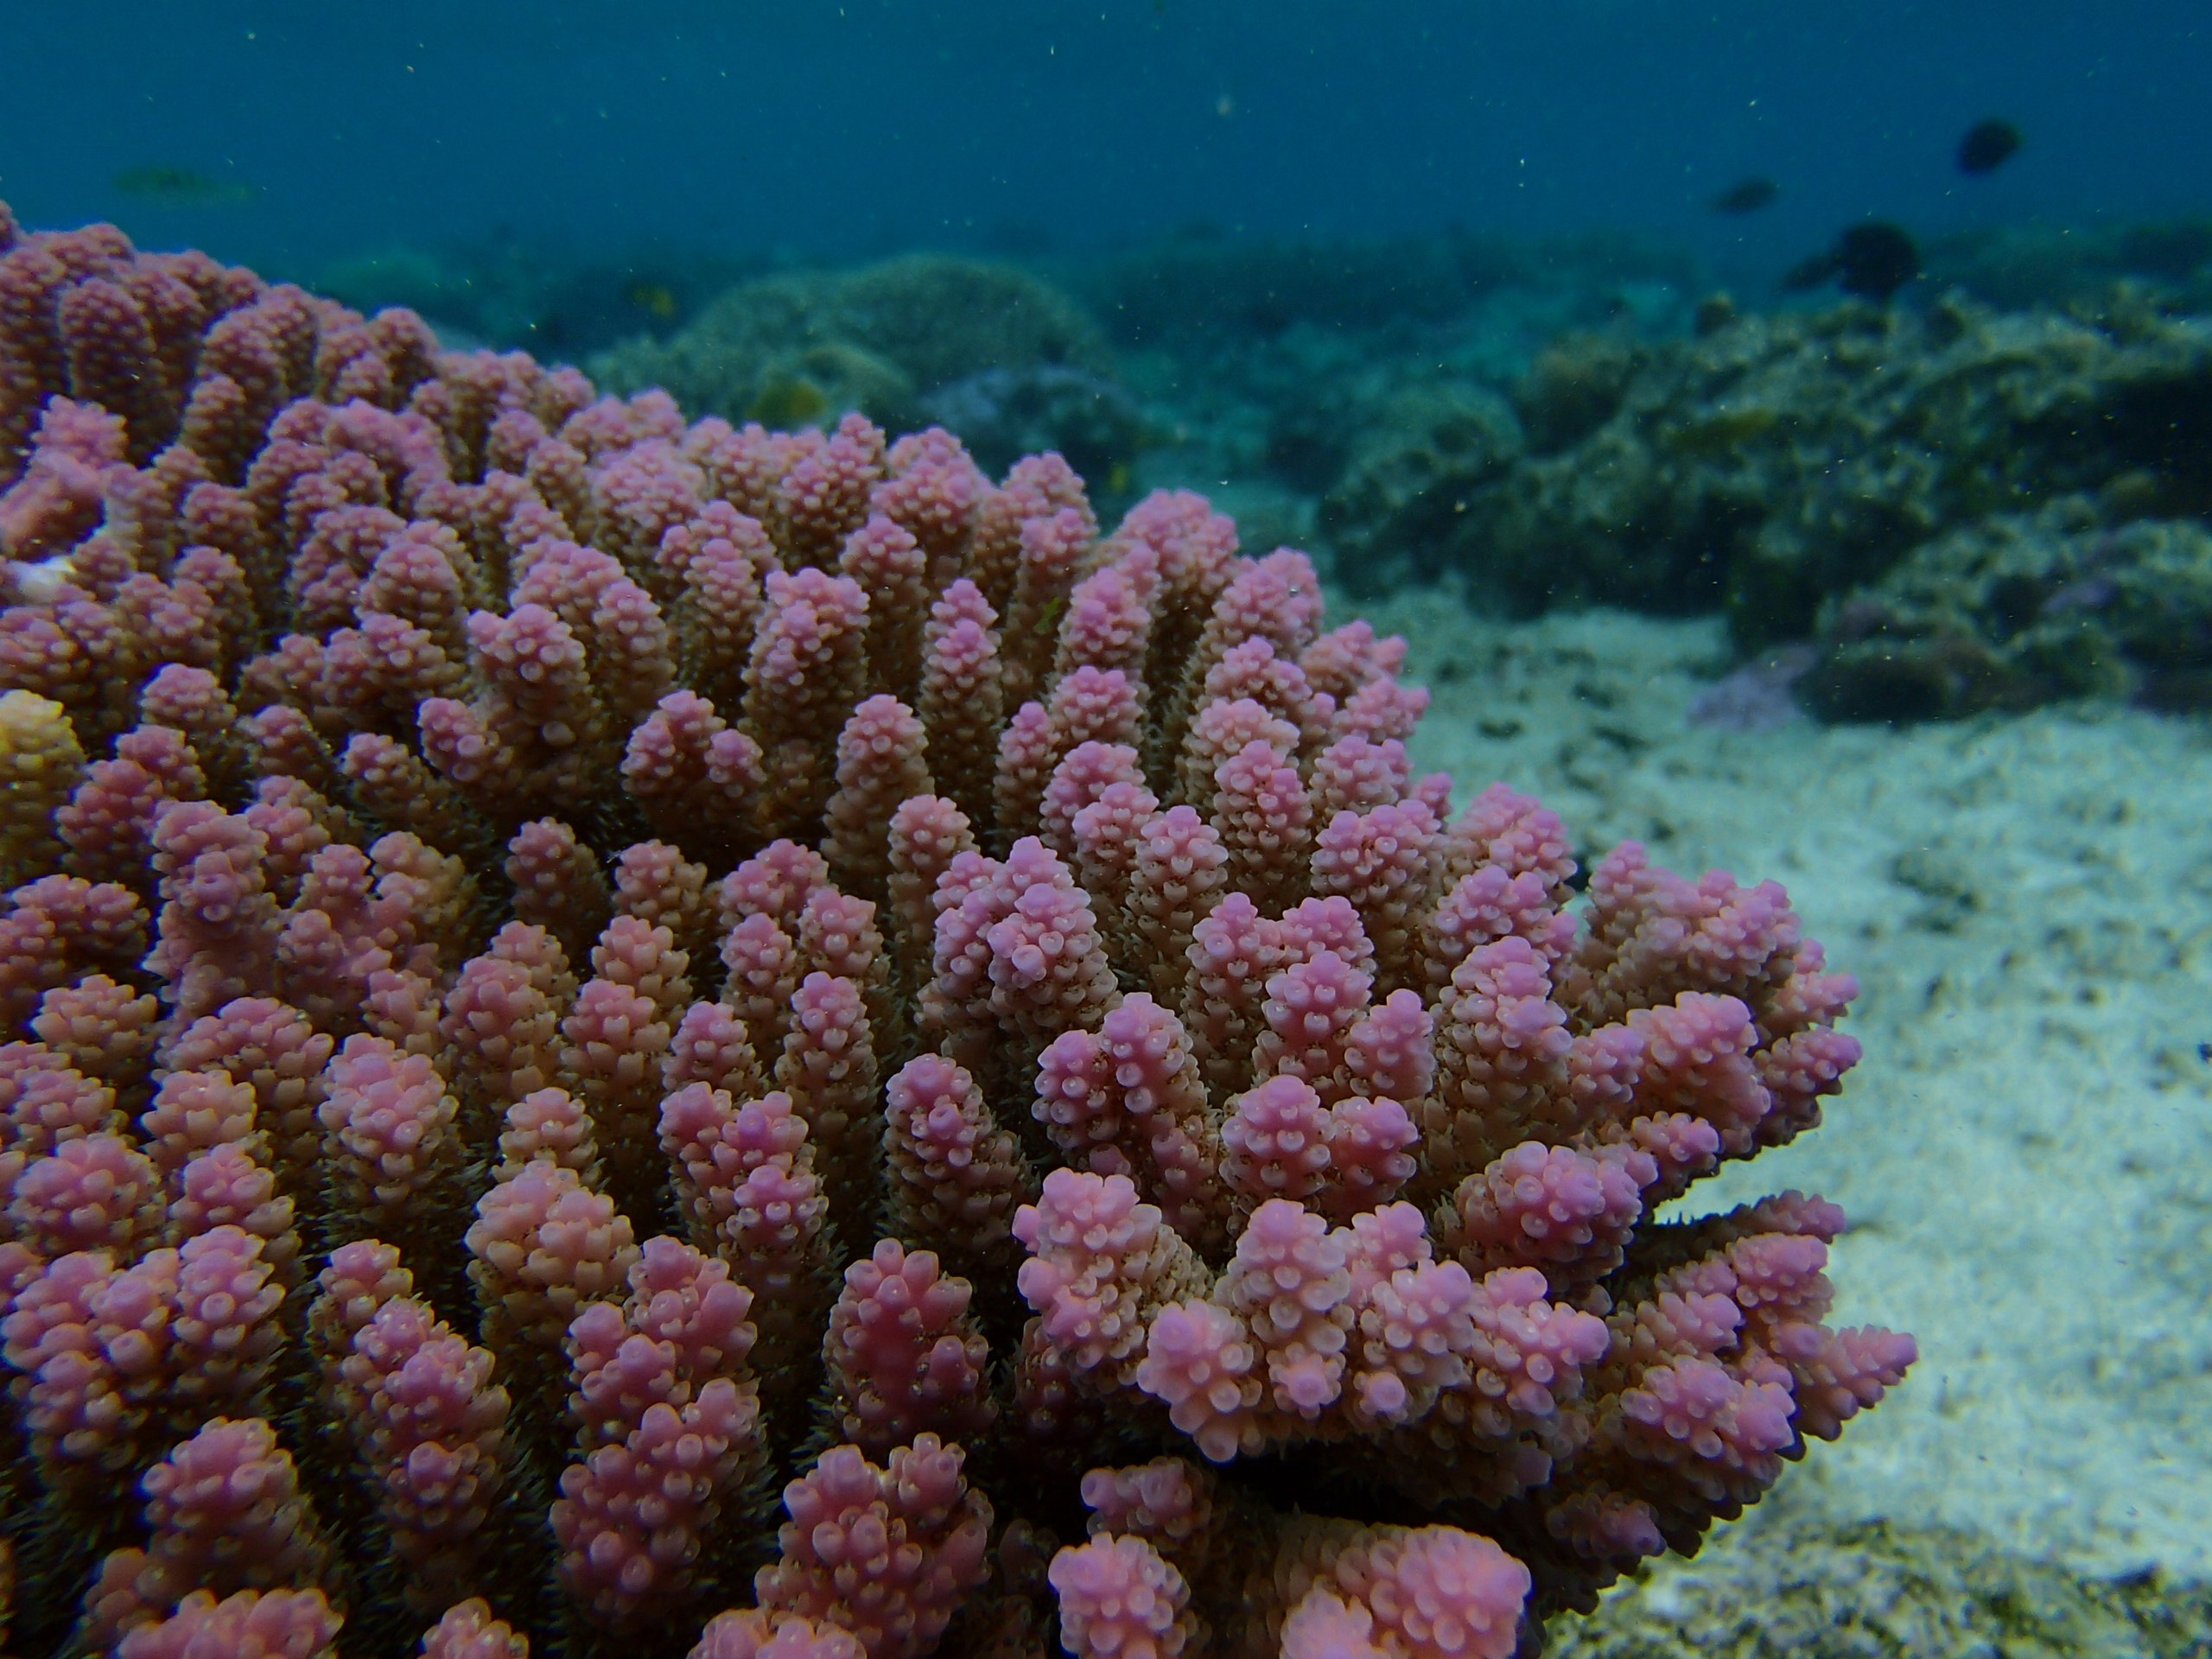 A new study has found that corals might be able to adapt to warming waters, but only if greenhouse gas emissions are reduced.